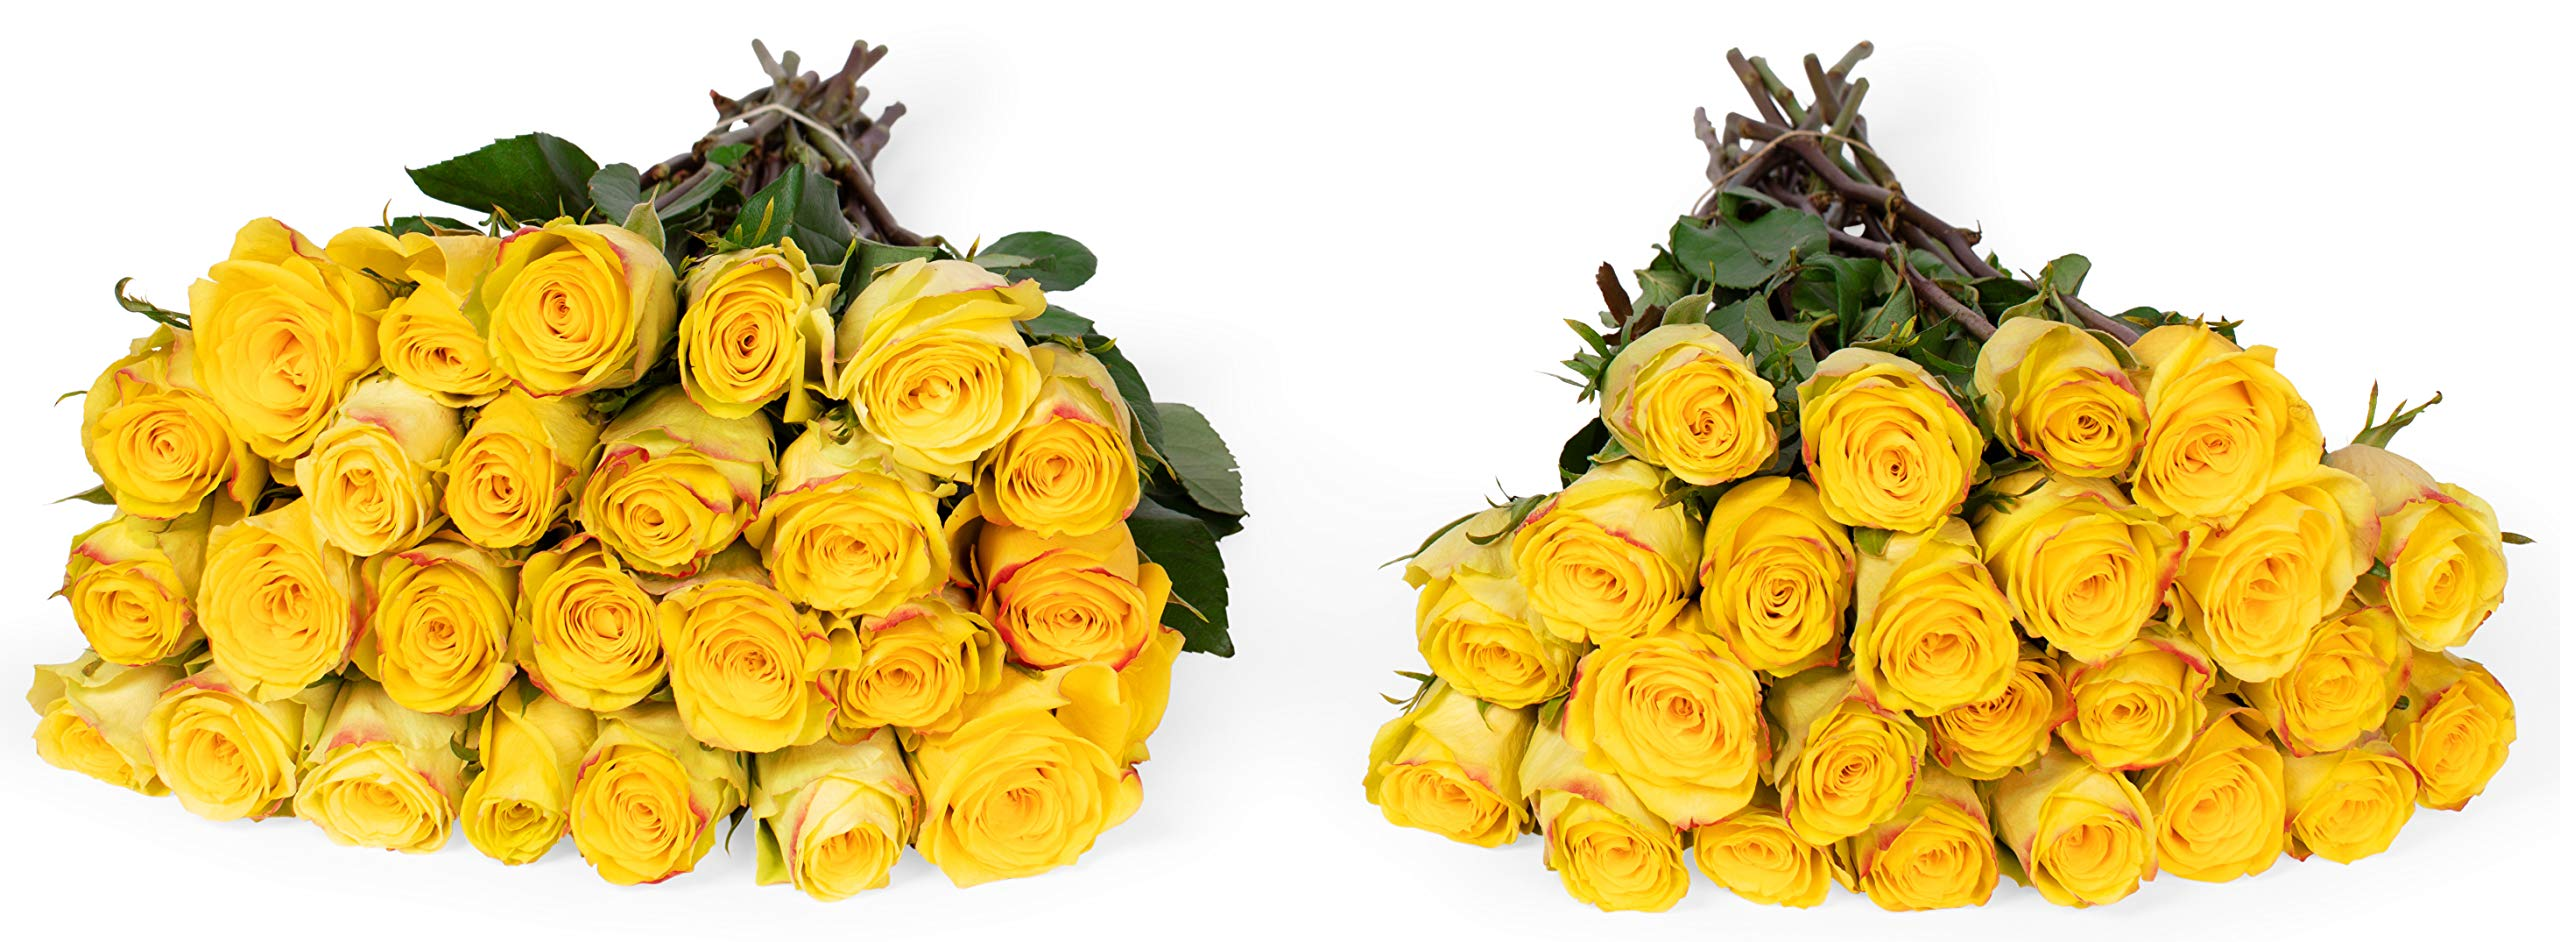 Benchmark Bouquets 50 Yellow Roses Farm Direct (Fresh Cut Flowers)